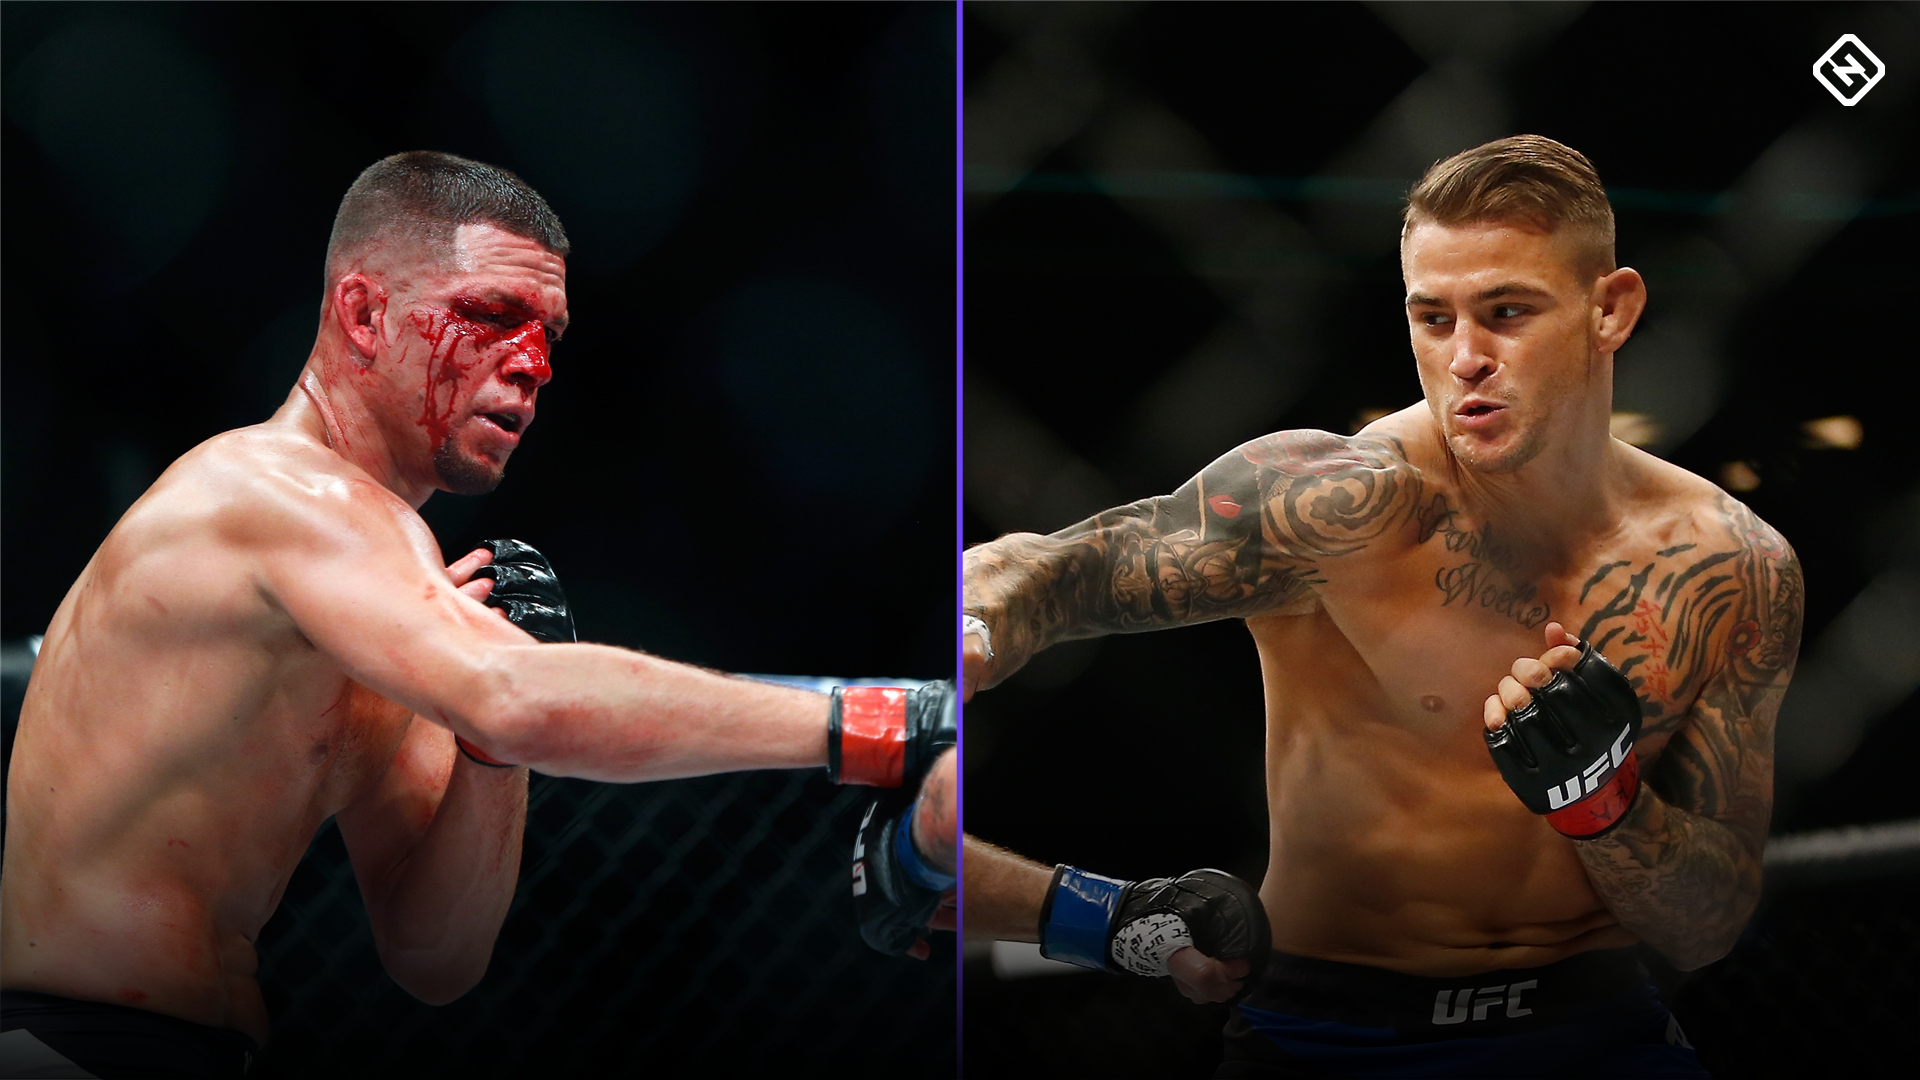 Nate Diaz To Make Comeback At UFC 230 Against Dustin Poirier